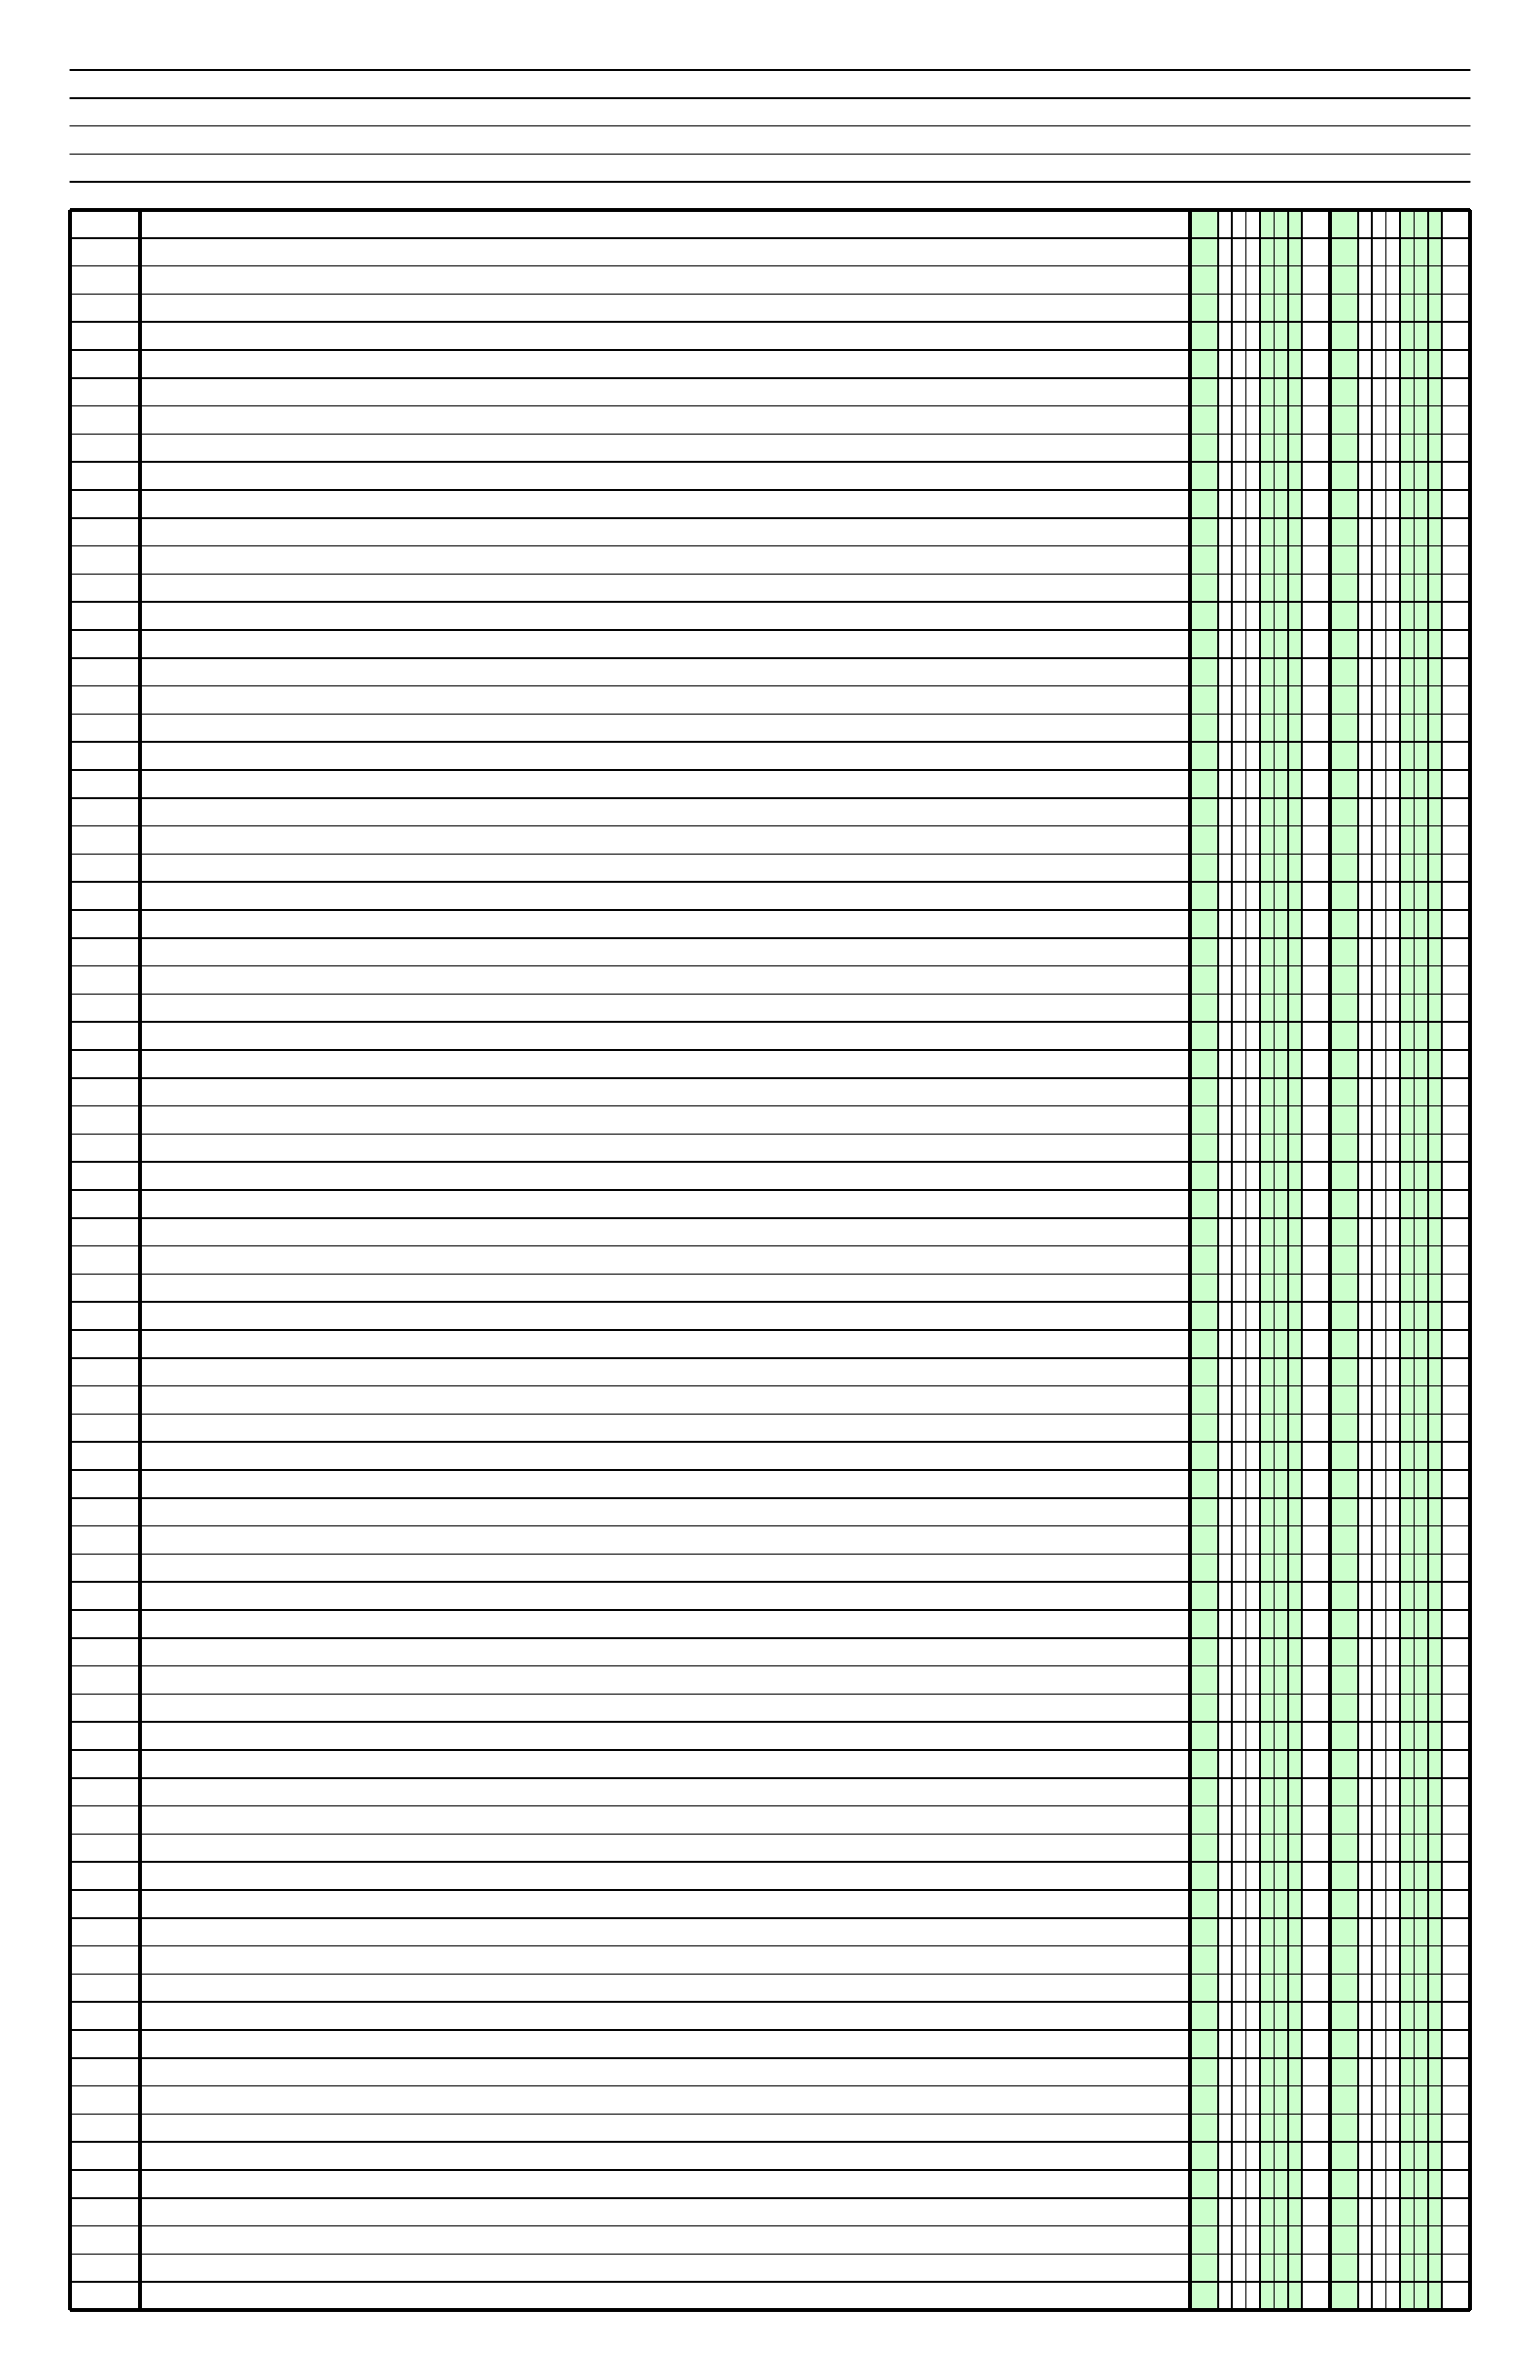 Columnar Paper with Two Columns on LedgerSized Paper in